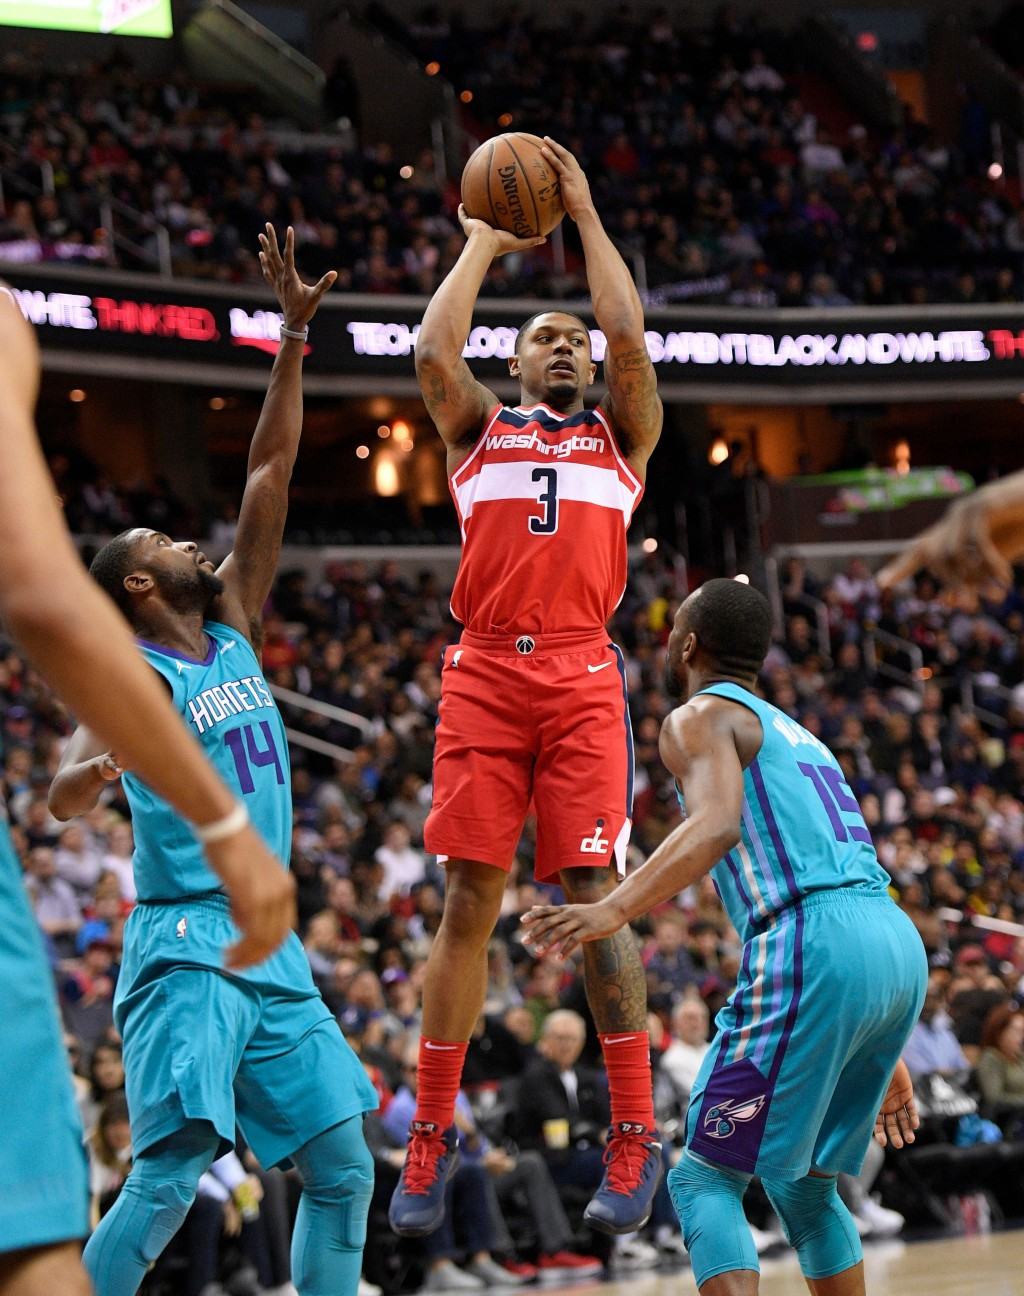 Washington Wizards guard Bradley Beal (3) looks to pass against Charlotte Hornets forward Michael Kidd-Gilchrist (14) and guard Kemba Walker (15) duri